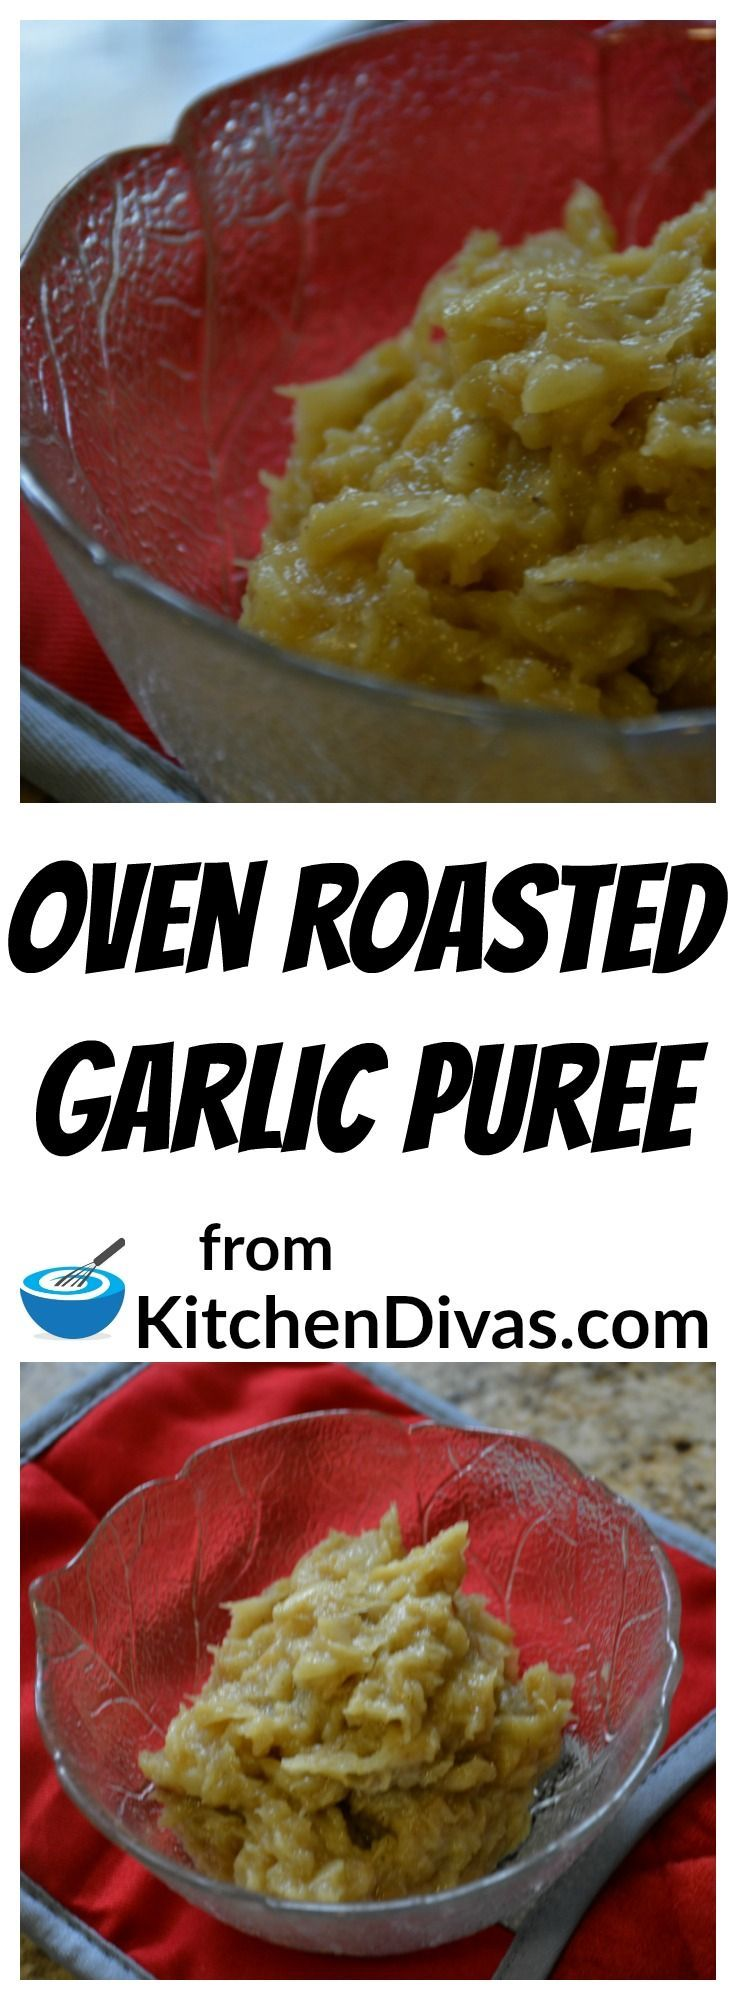 We are big garlic lovers here and we always have some Oven Roasted Garlic Puree in the fridge ready to go.  We use it in mashed potatoes, mixed with sour cream as a topping for baked potatoes, added to sauces, dressings or even when roasting vegetables.  The possibilities are endless.  Oven Roasted Garlic flavours dishes with a milder sweeter garlic flavour.  Totally awesome.  You have to give it a try.